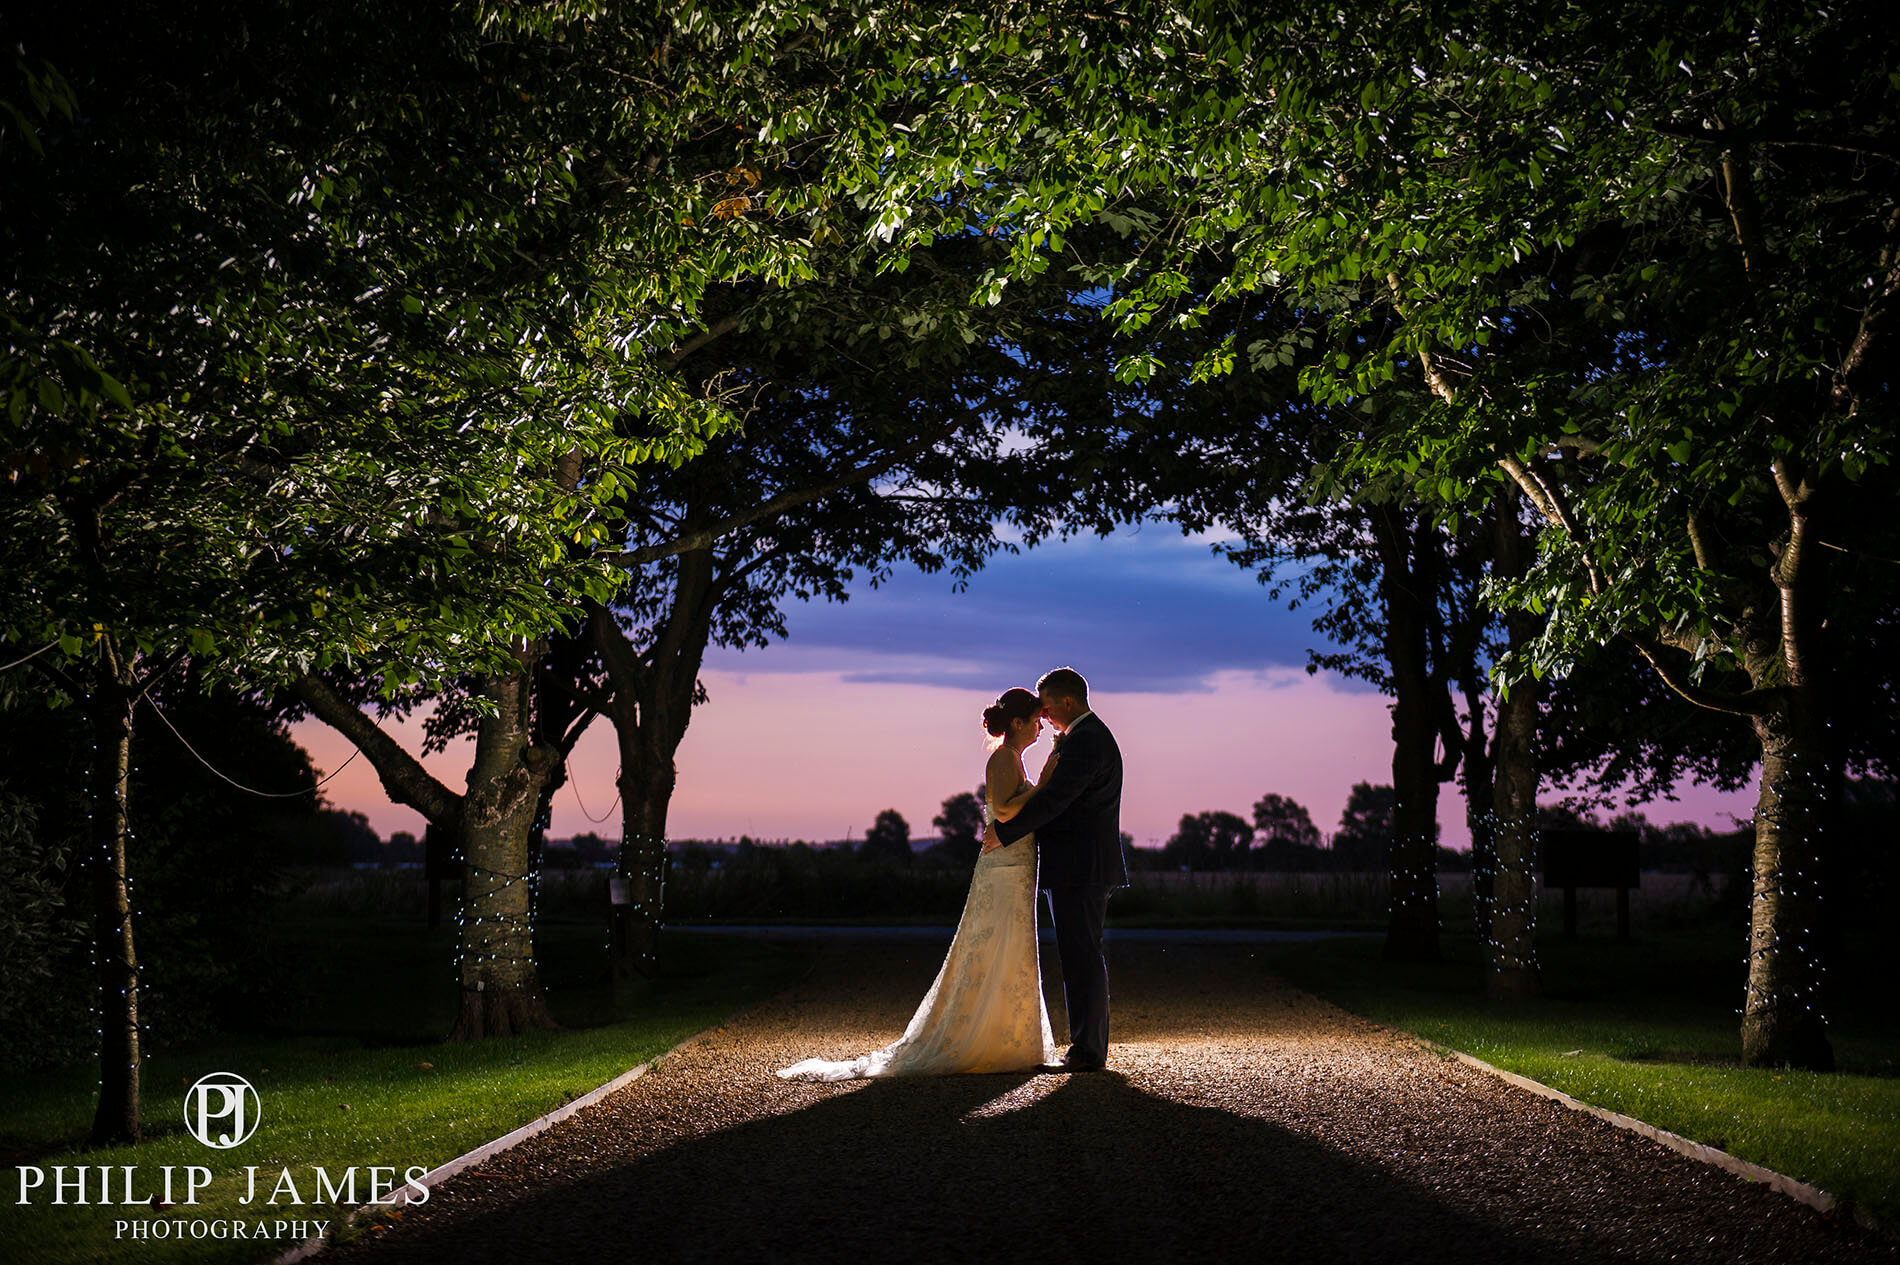 Birmingham Wedding Photographer - Philip James Photography based in Solihull (64 of 68)